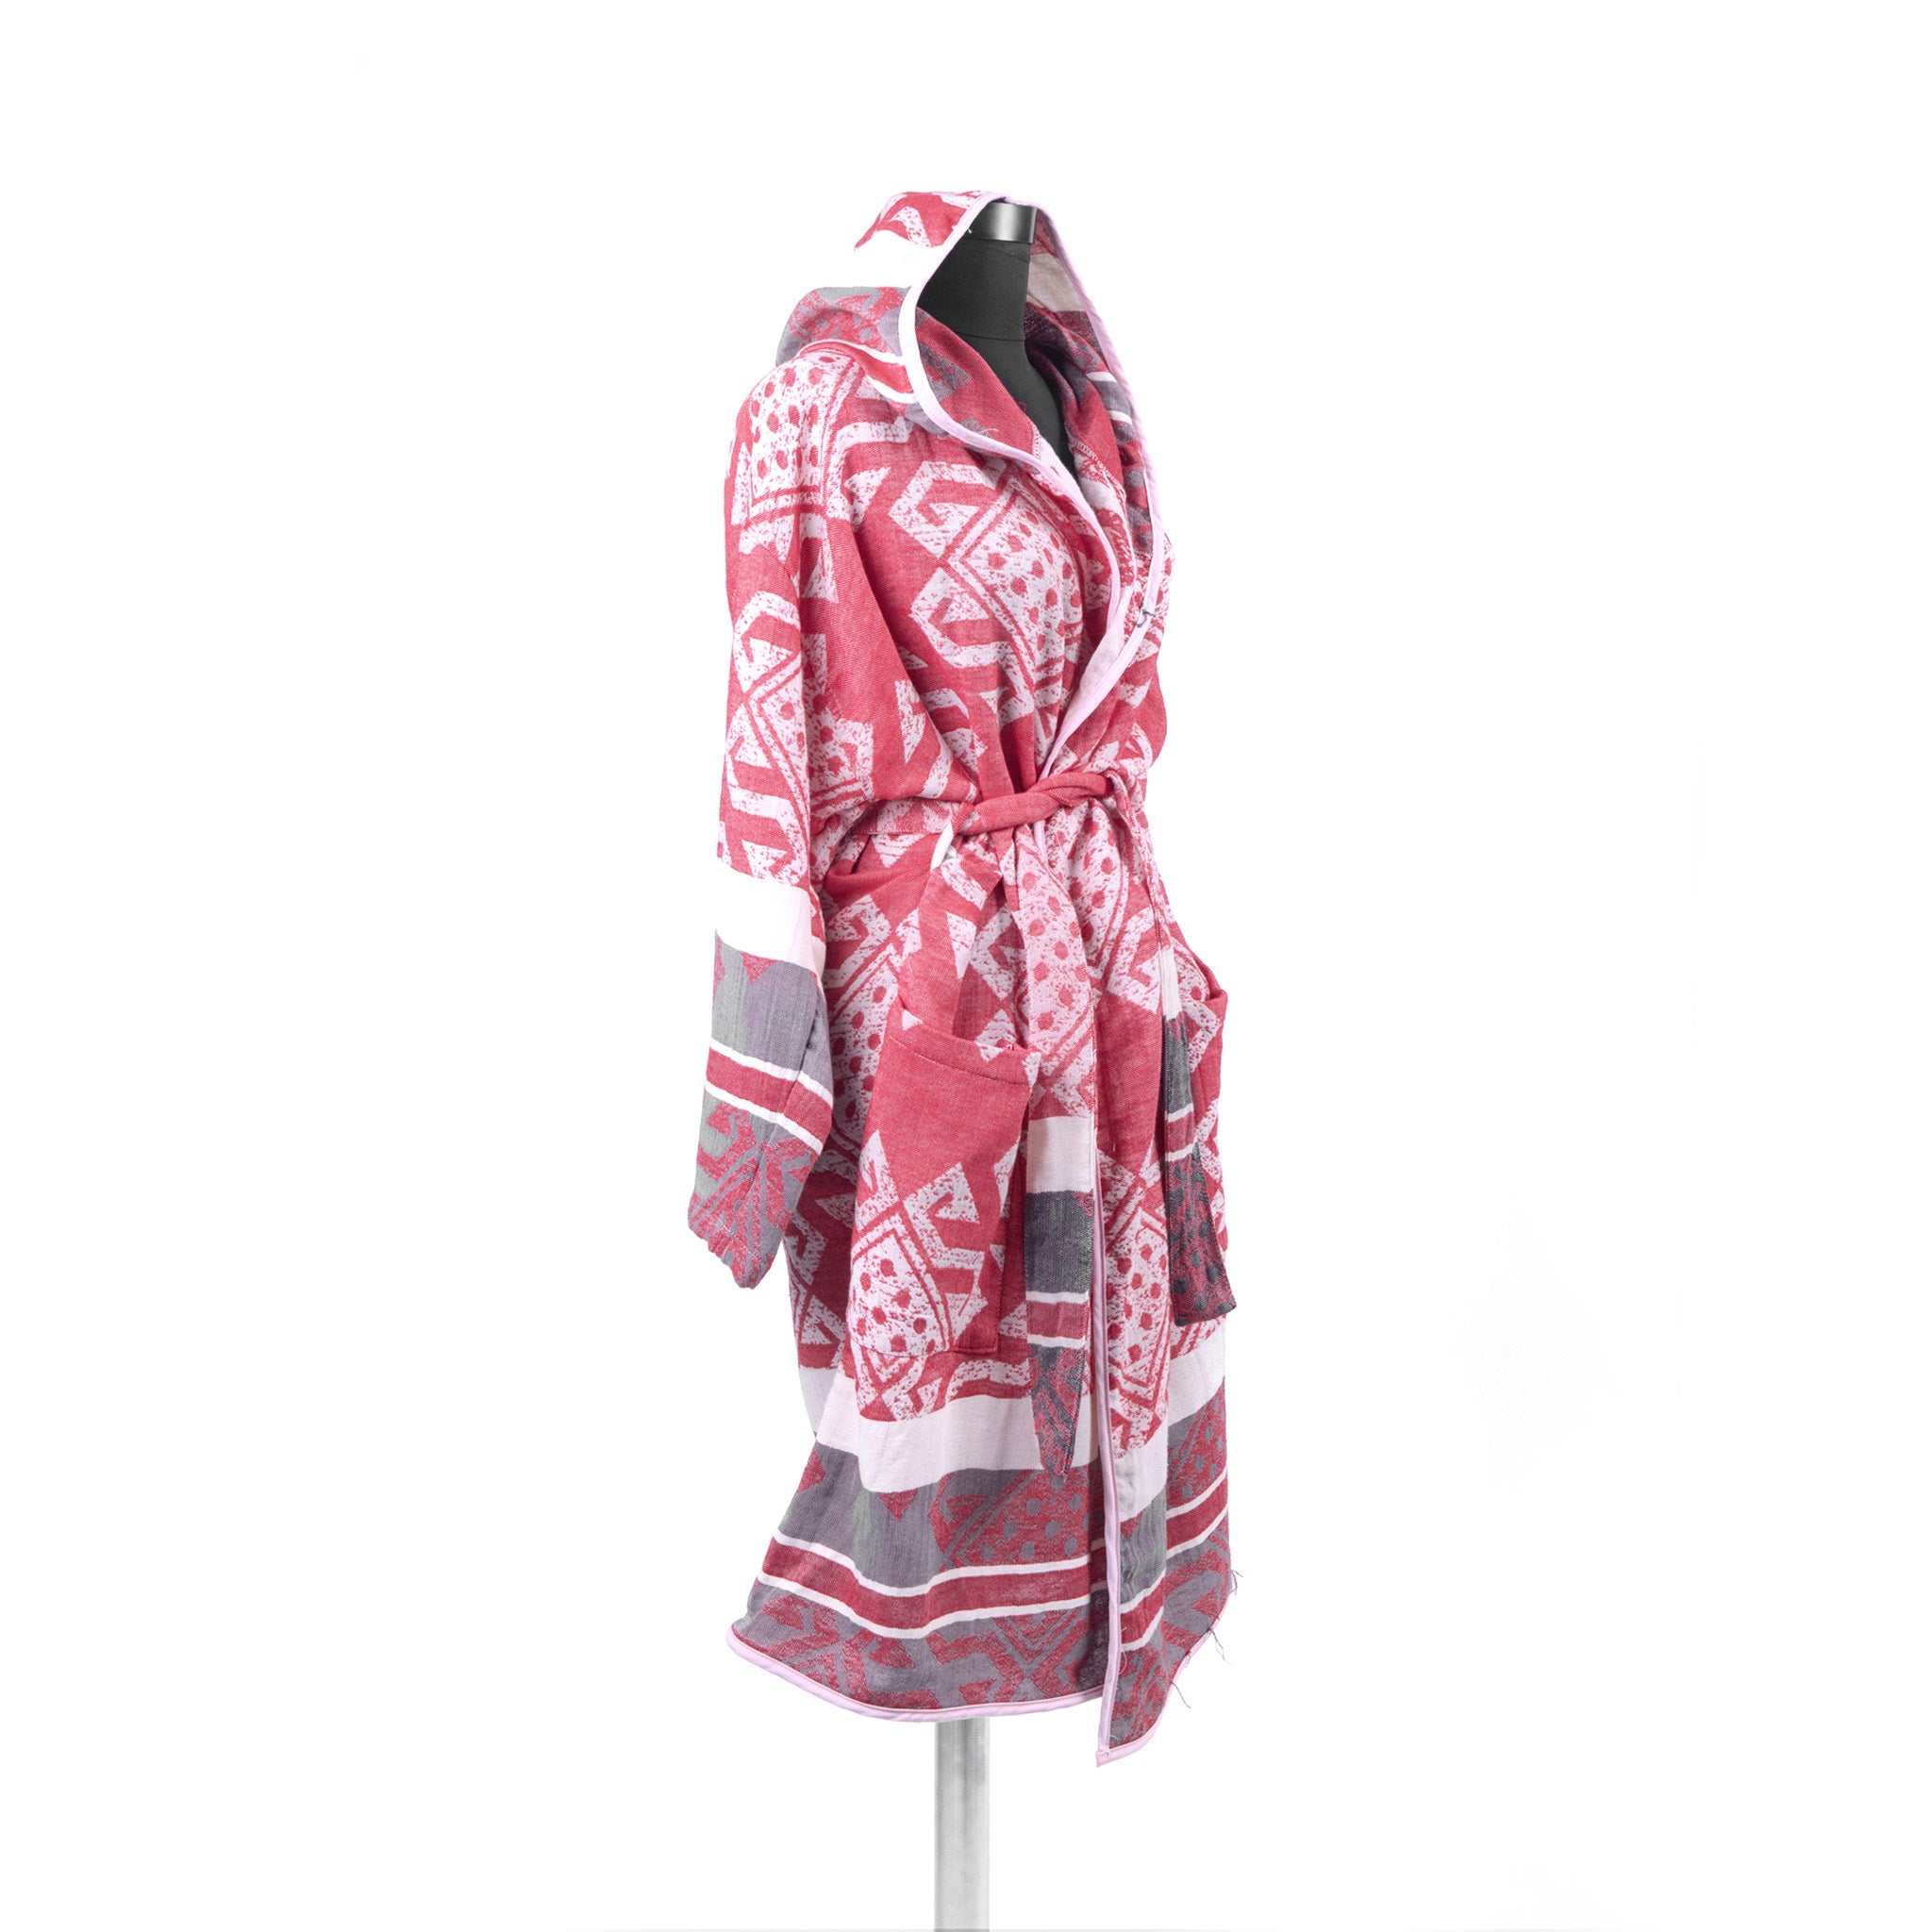 Turkish Towel, Mythology Bathrobe With Hood - Side